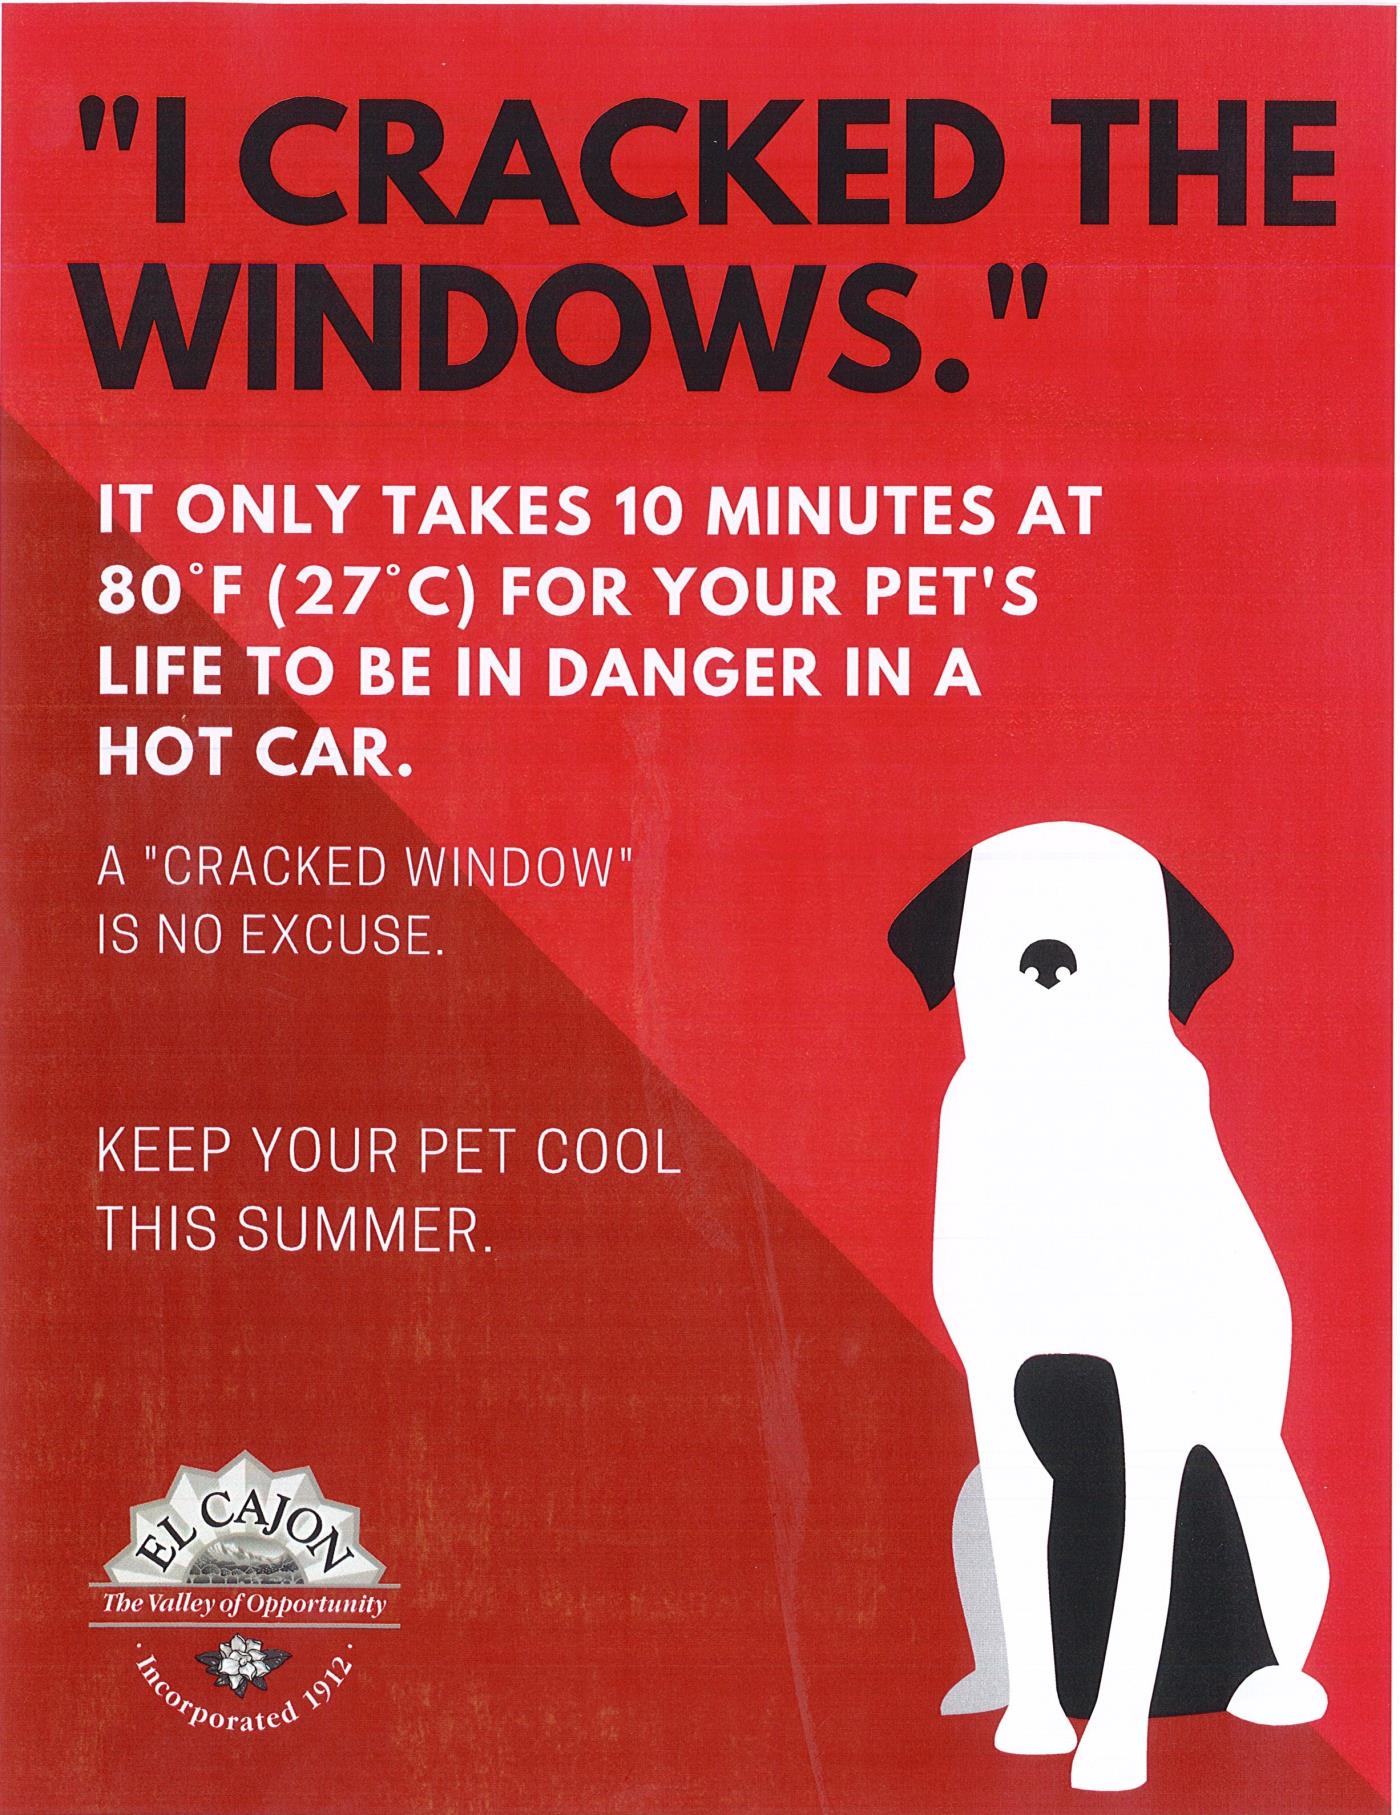 Stay Cool 1-cracked windows